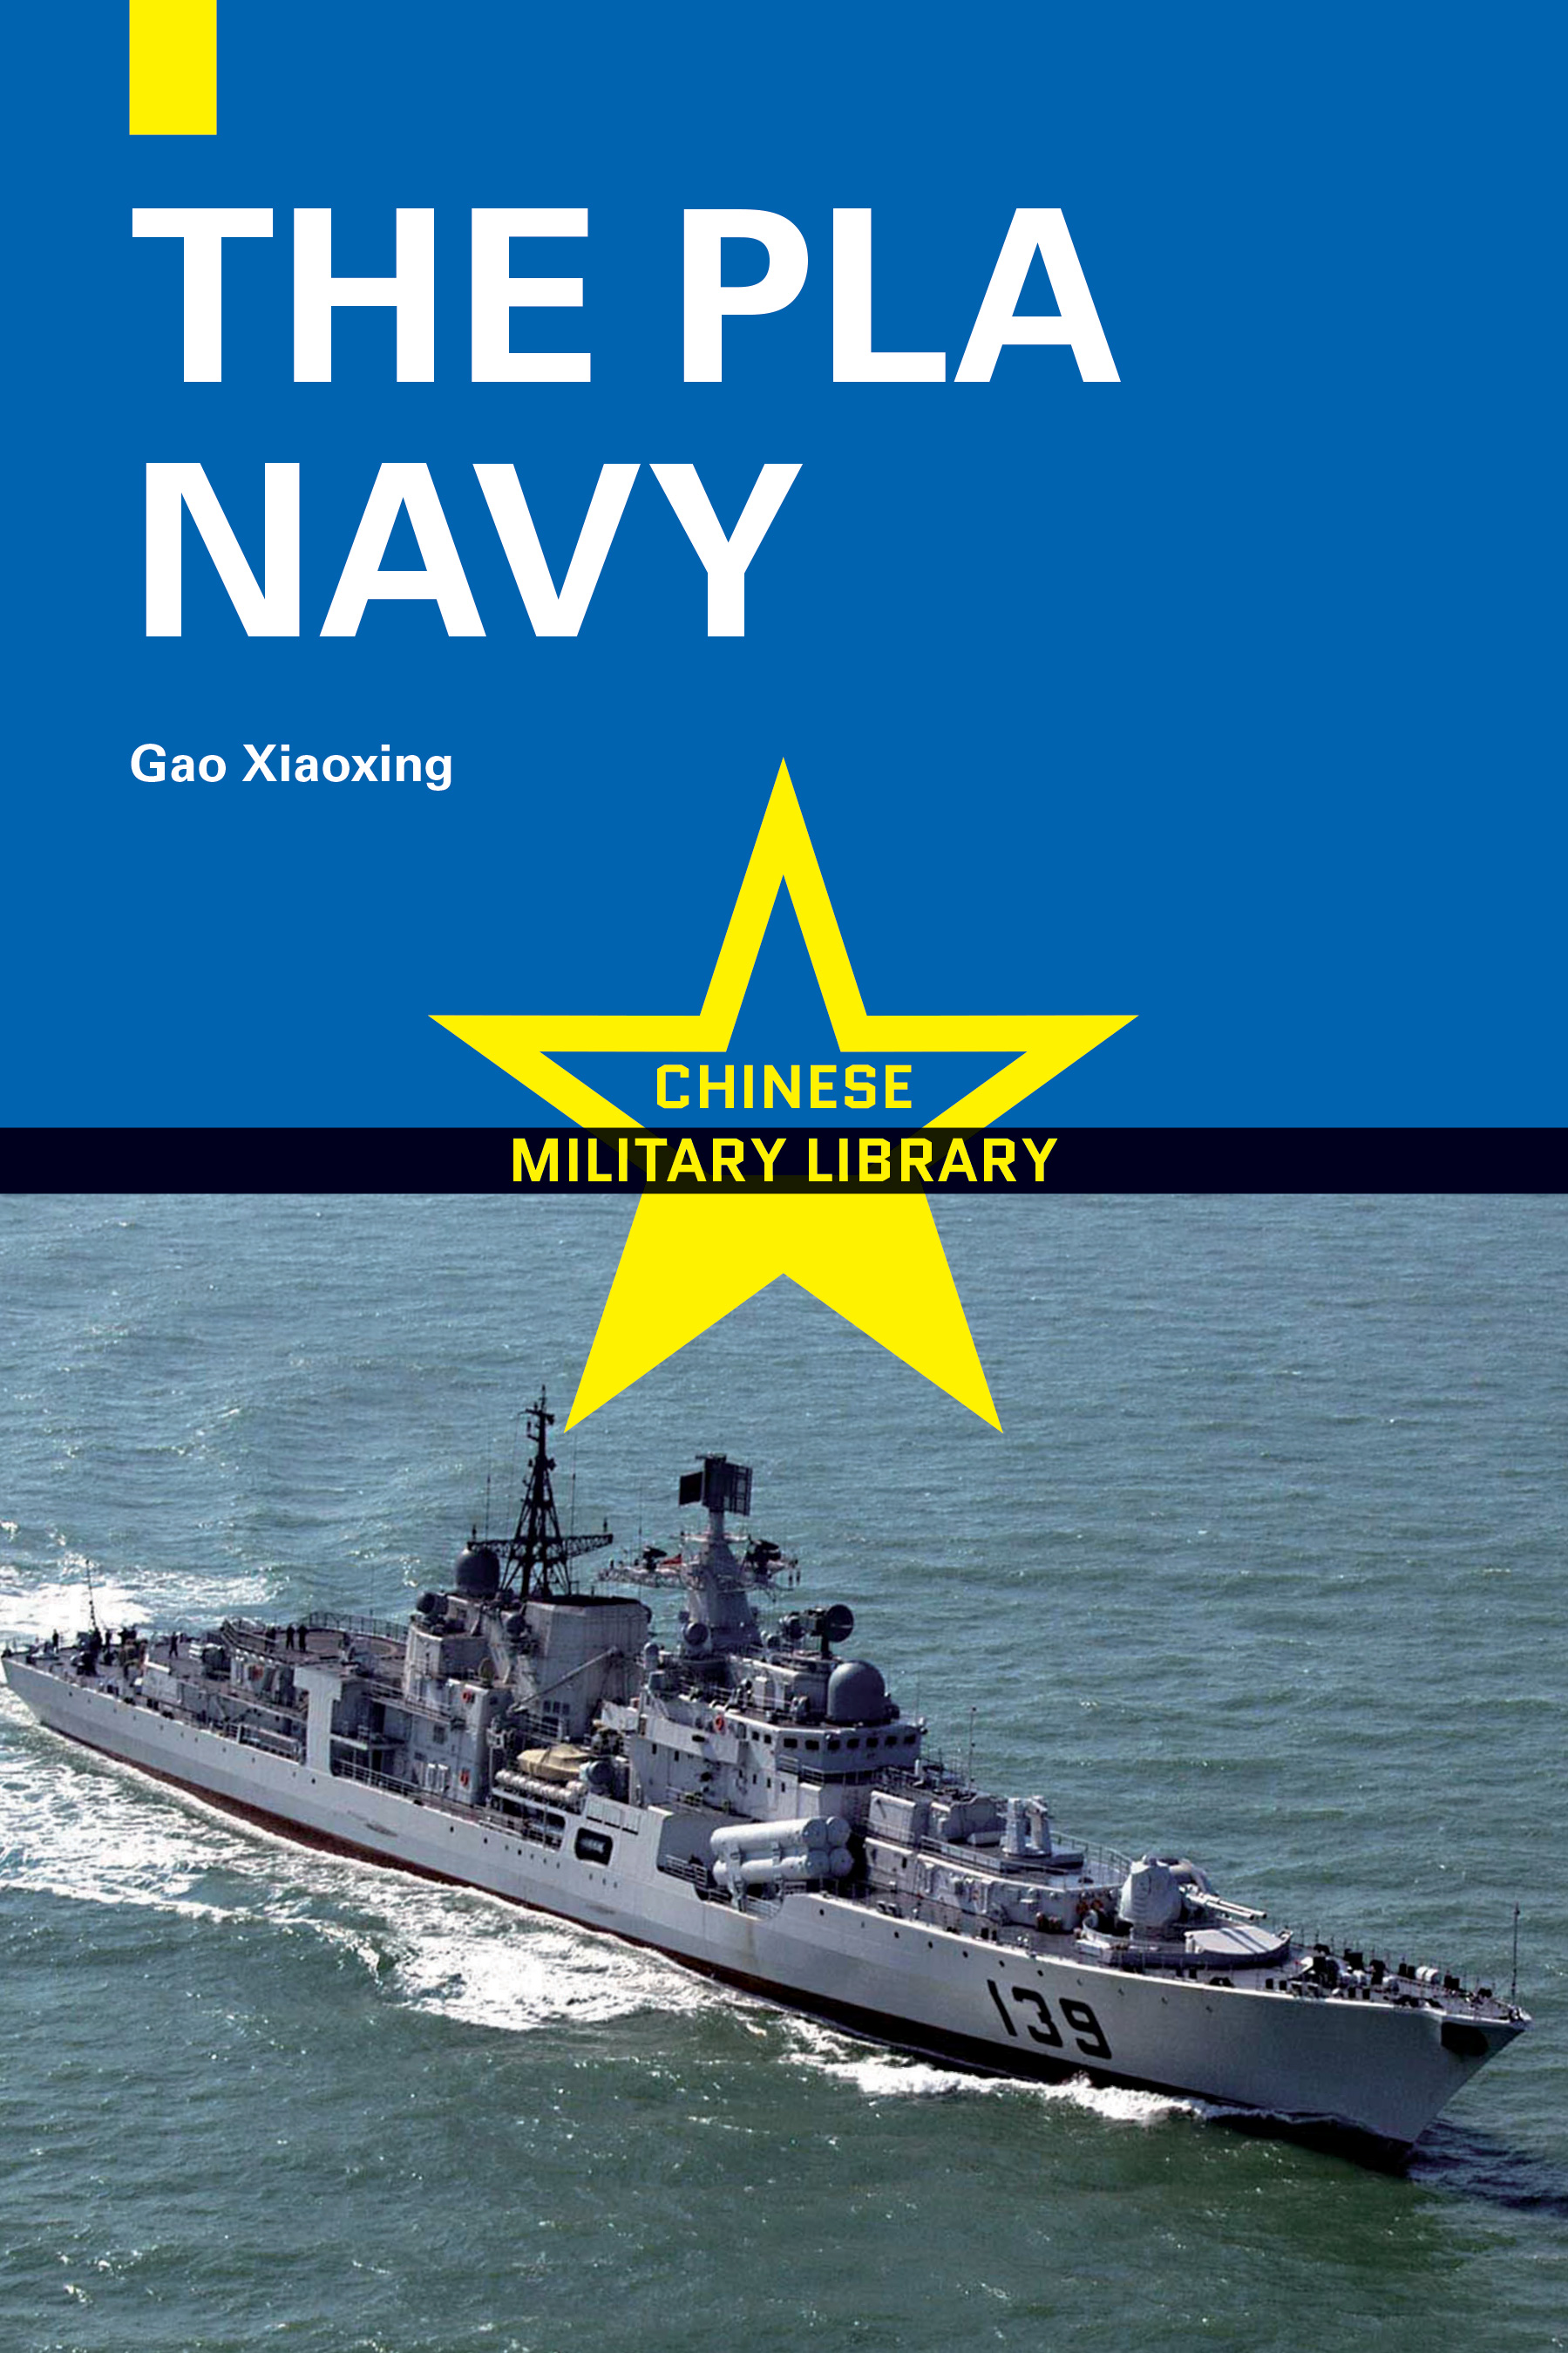 The PLA Navy